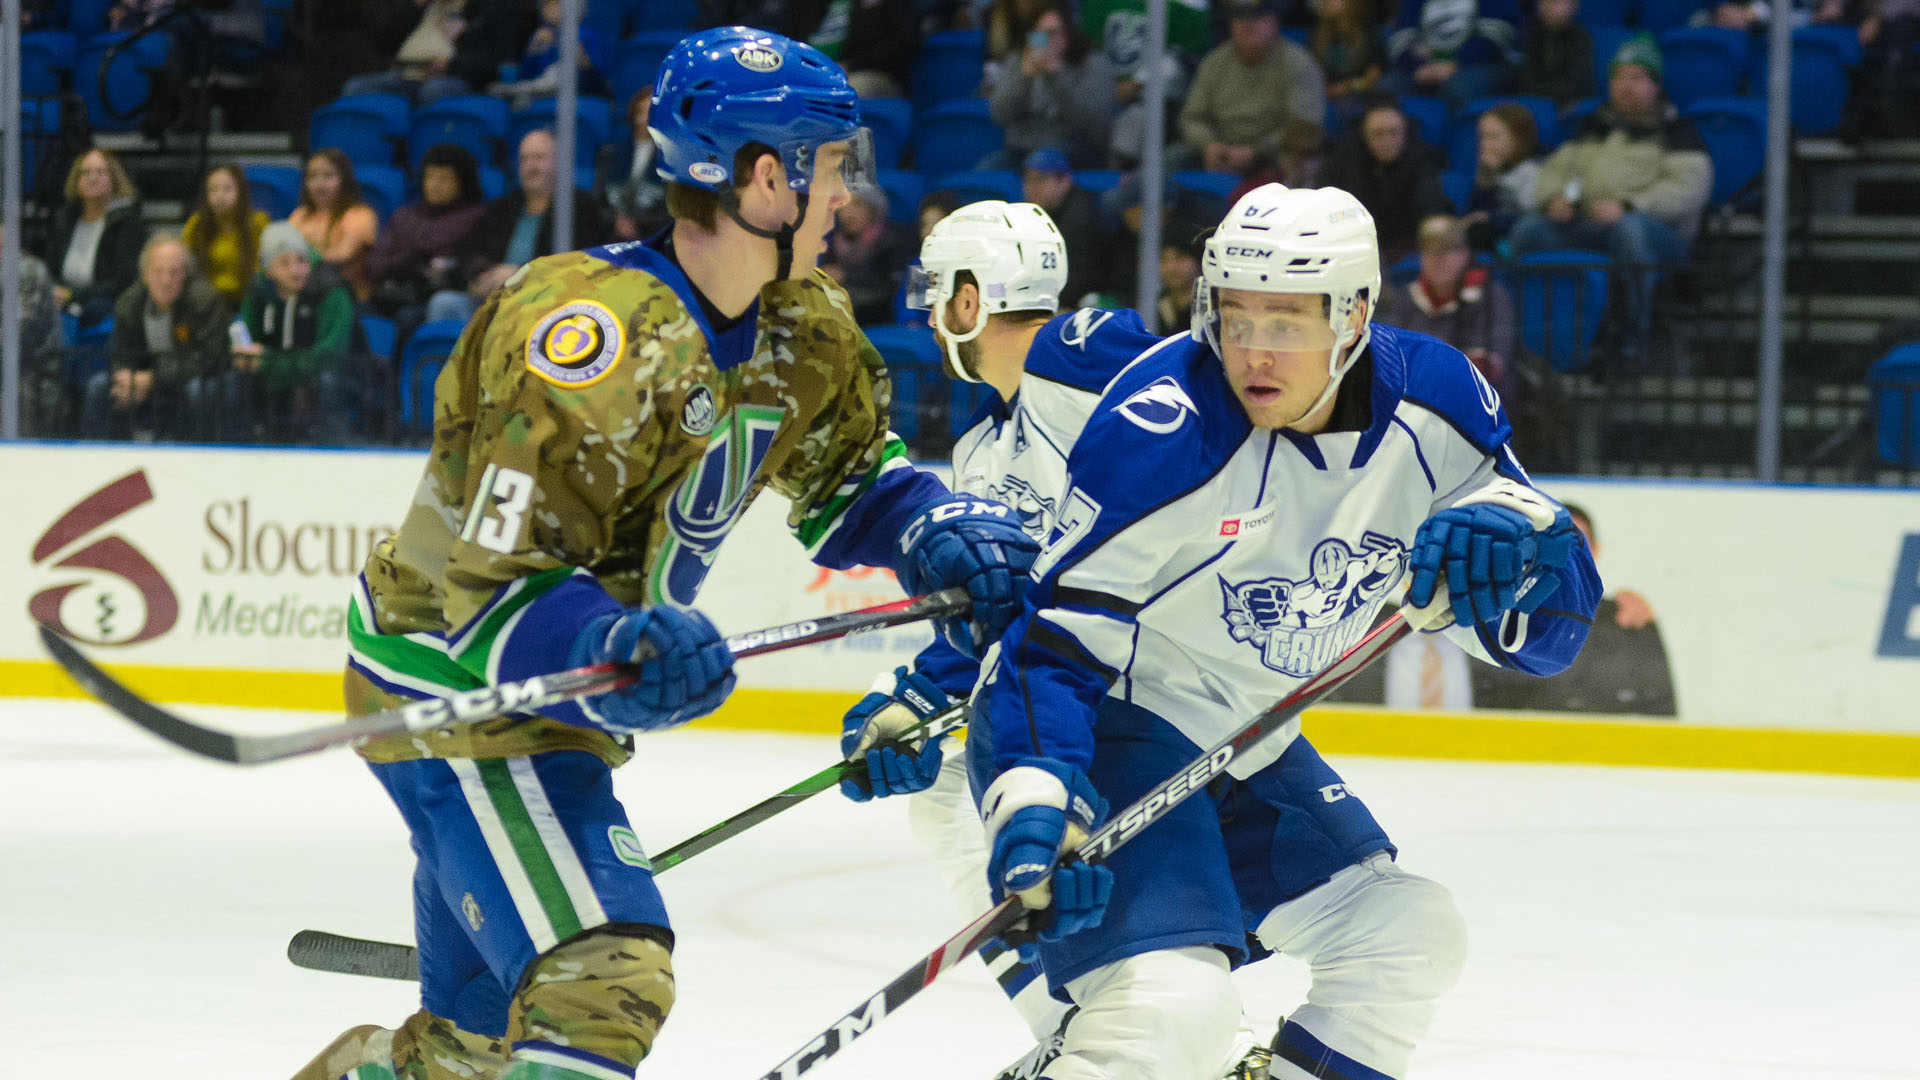 Syracuse Crunch vs. Utica Comets